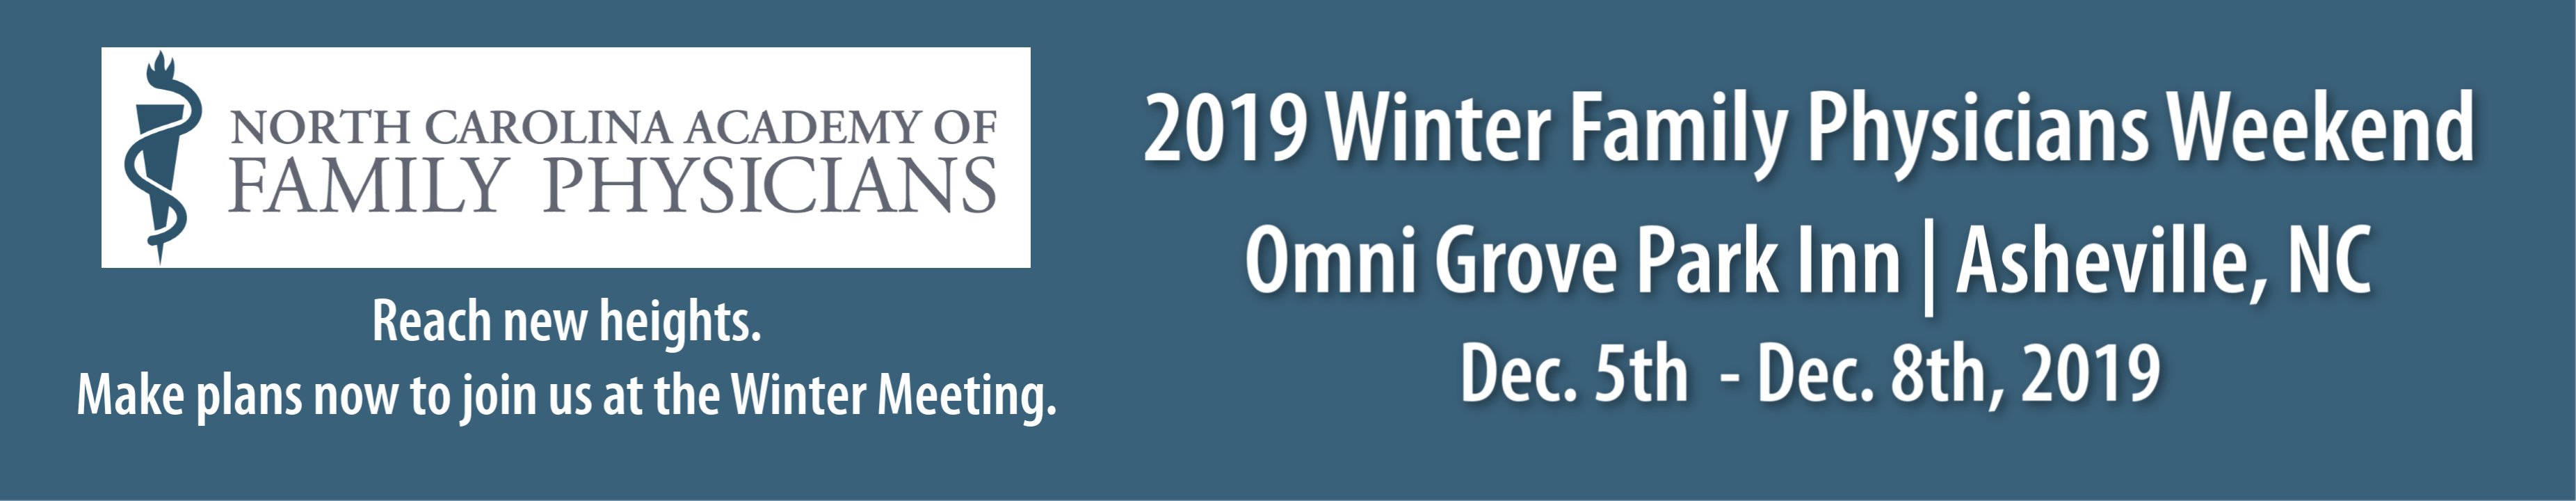 The 2019 Winter Family Physicians Weekend